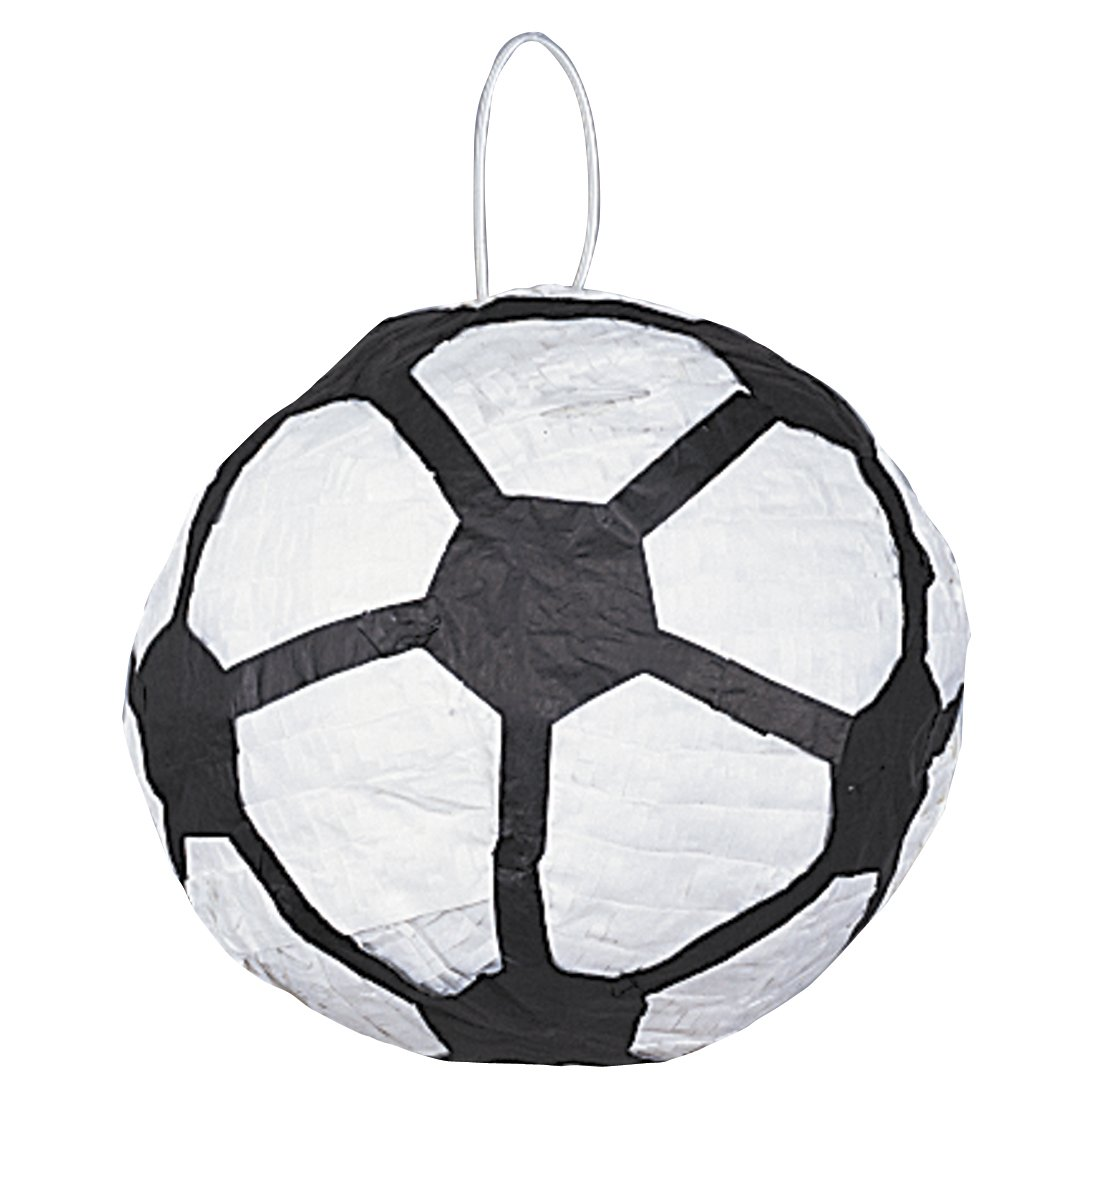 Football Piñata from amazon click here